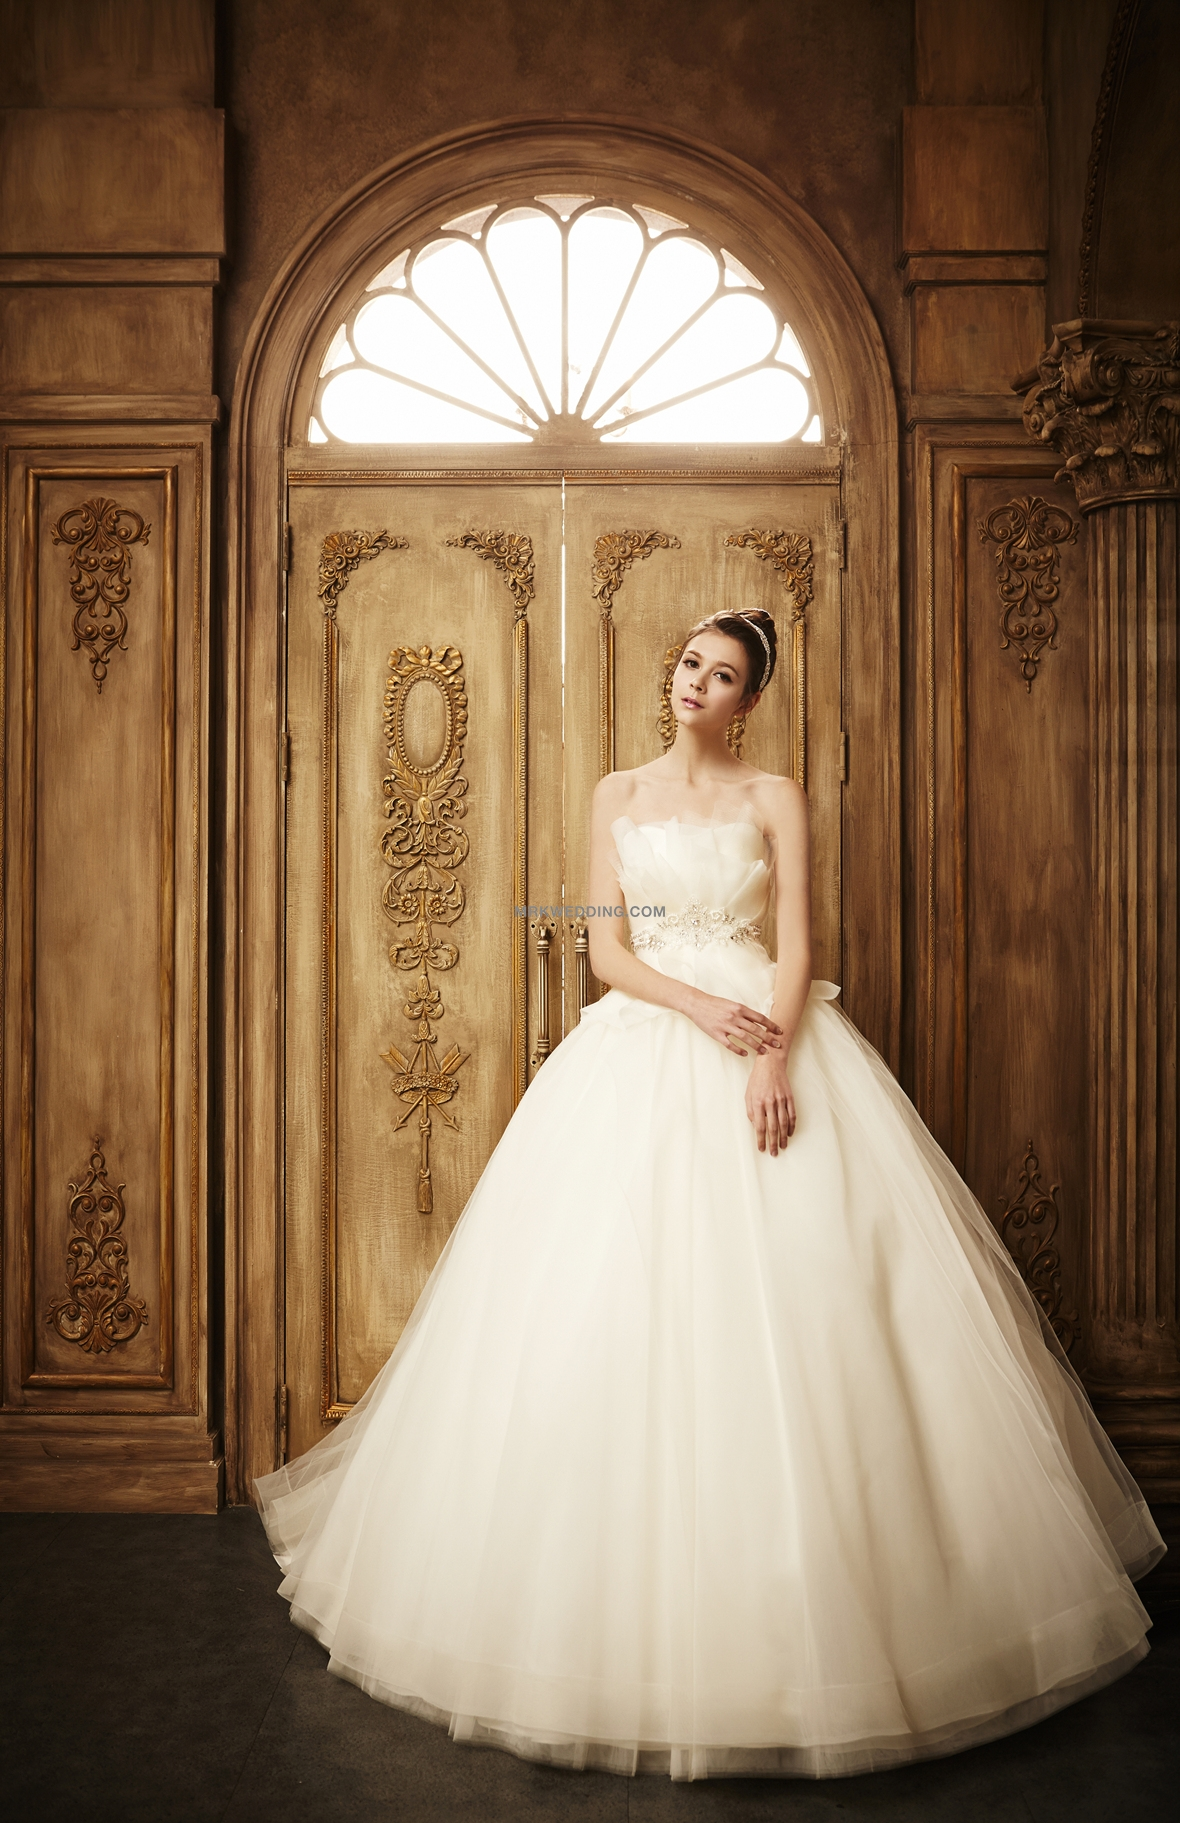 korea pre wedding dress (12).jpg